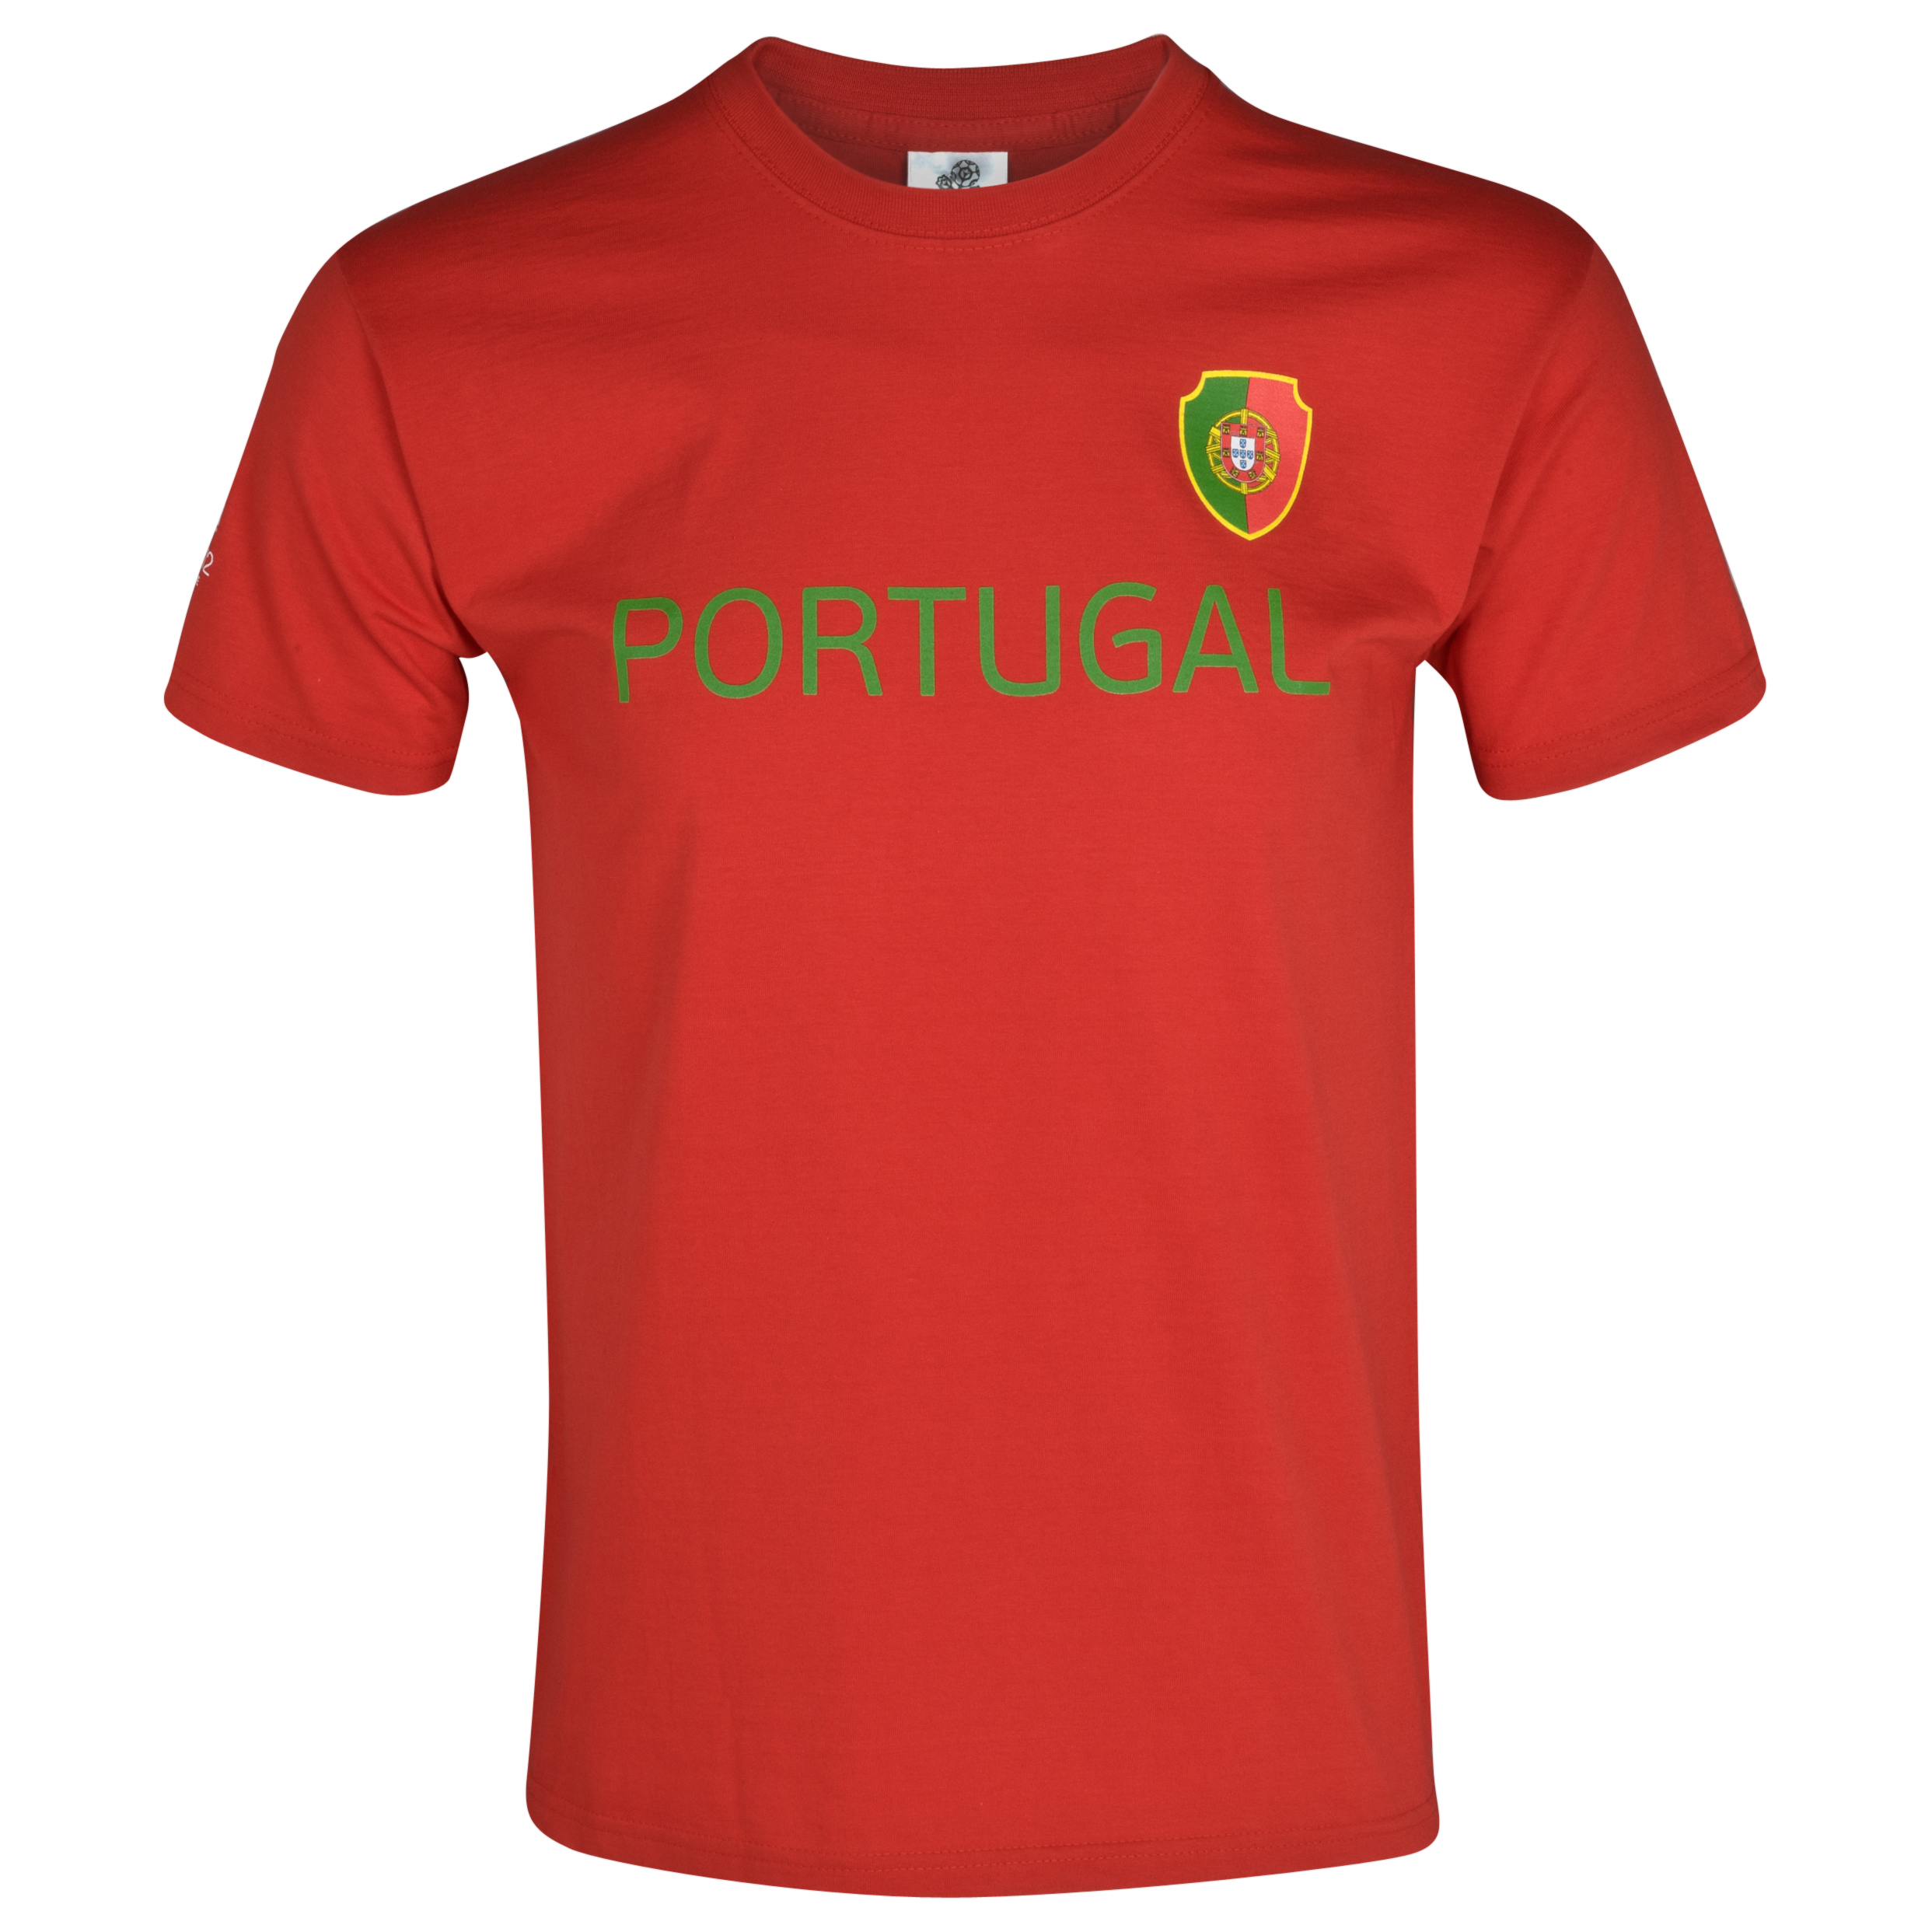 Euro 2012 Portugal T-Shirt - Red/Green